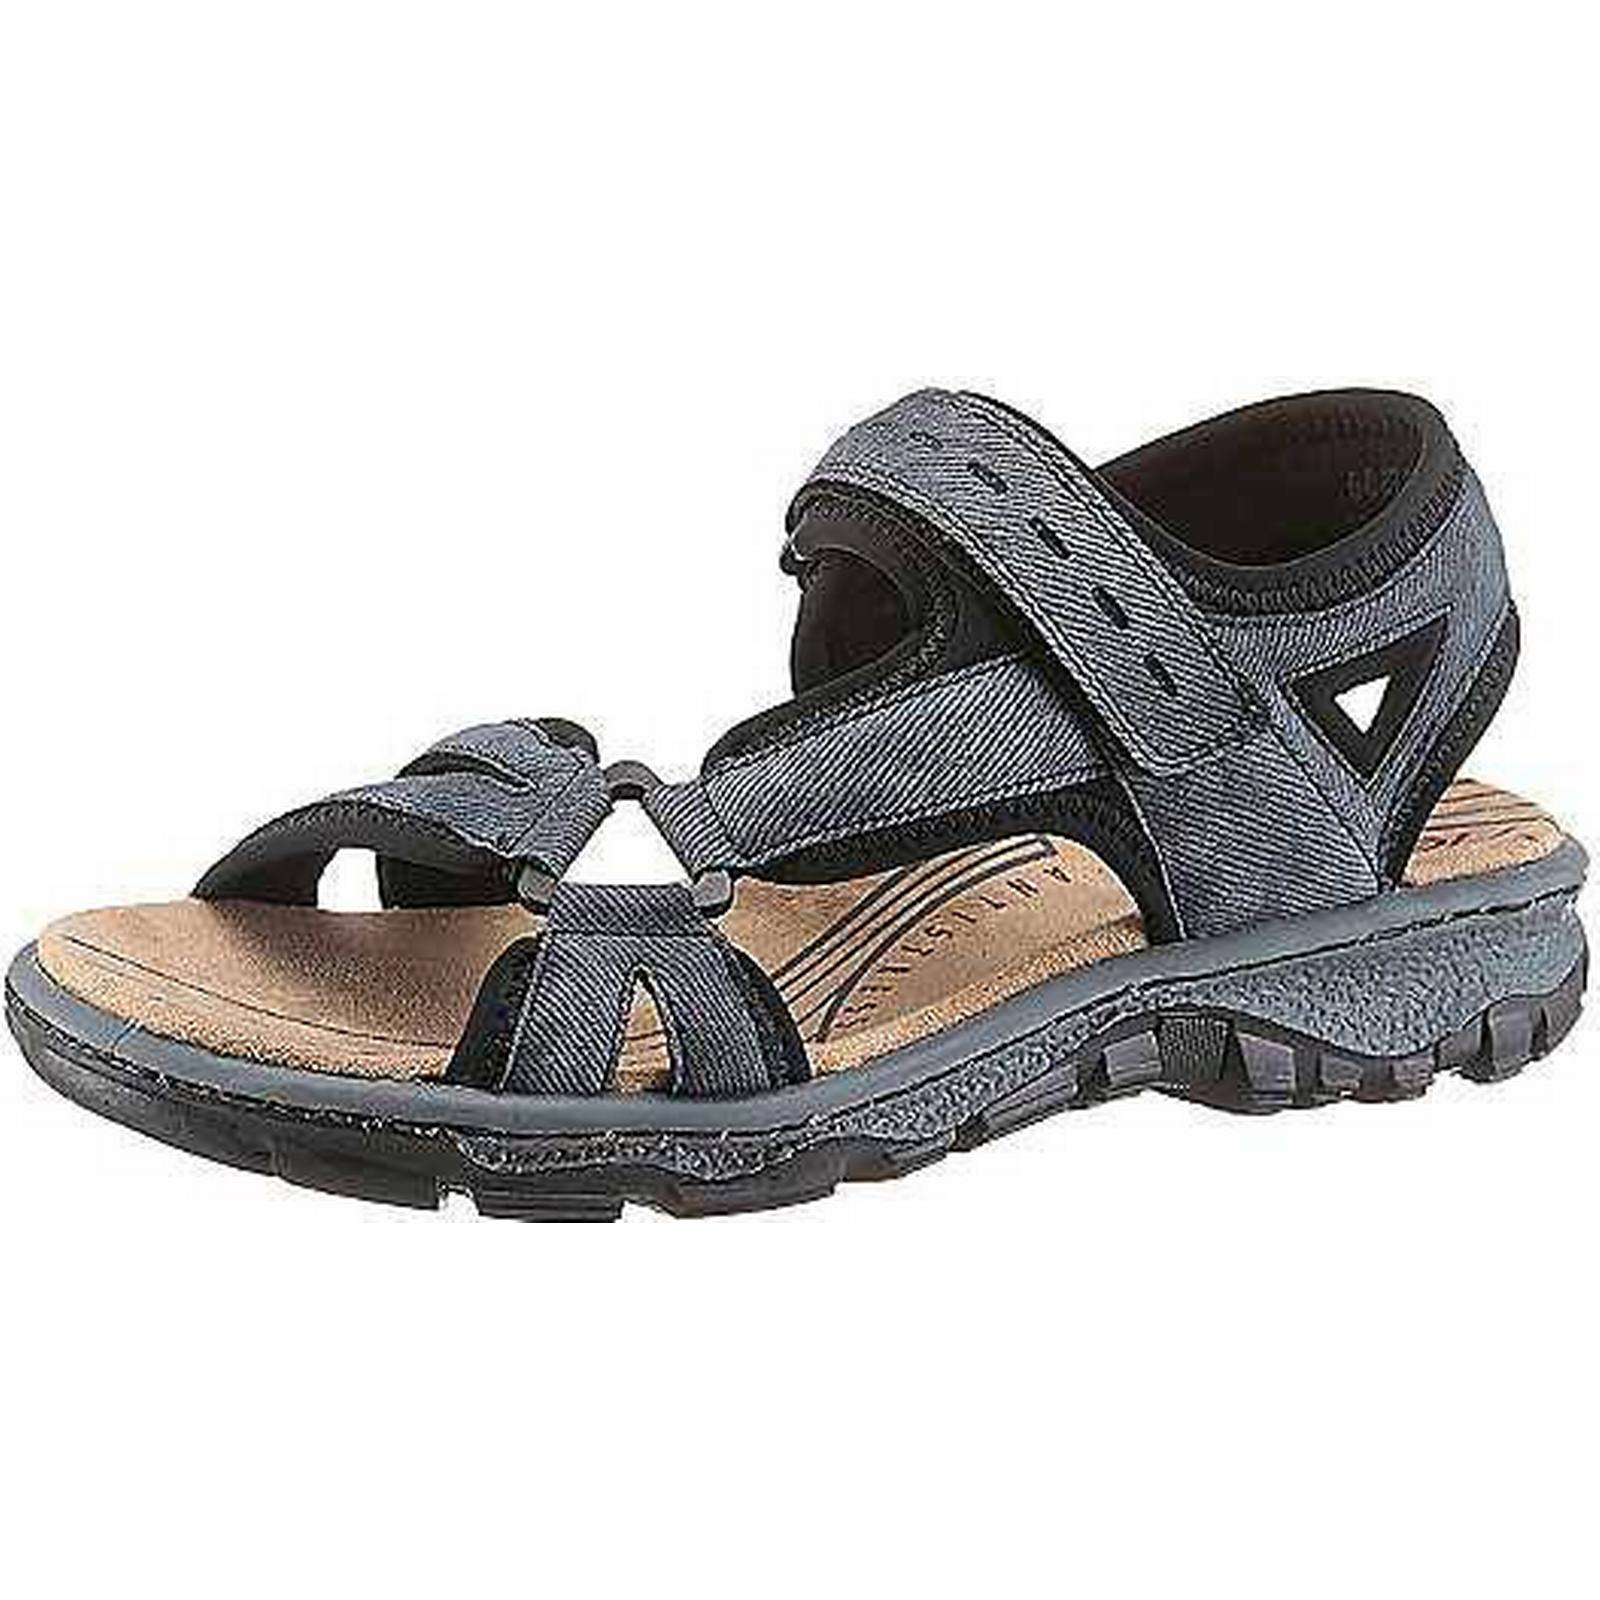 Rieker Outdoor by Sandals by Outdoor Rieker:Mr/Ms: Hot sale 1ab466